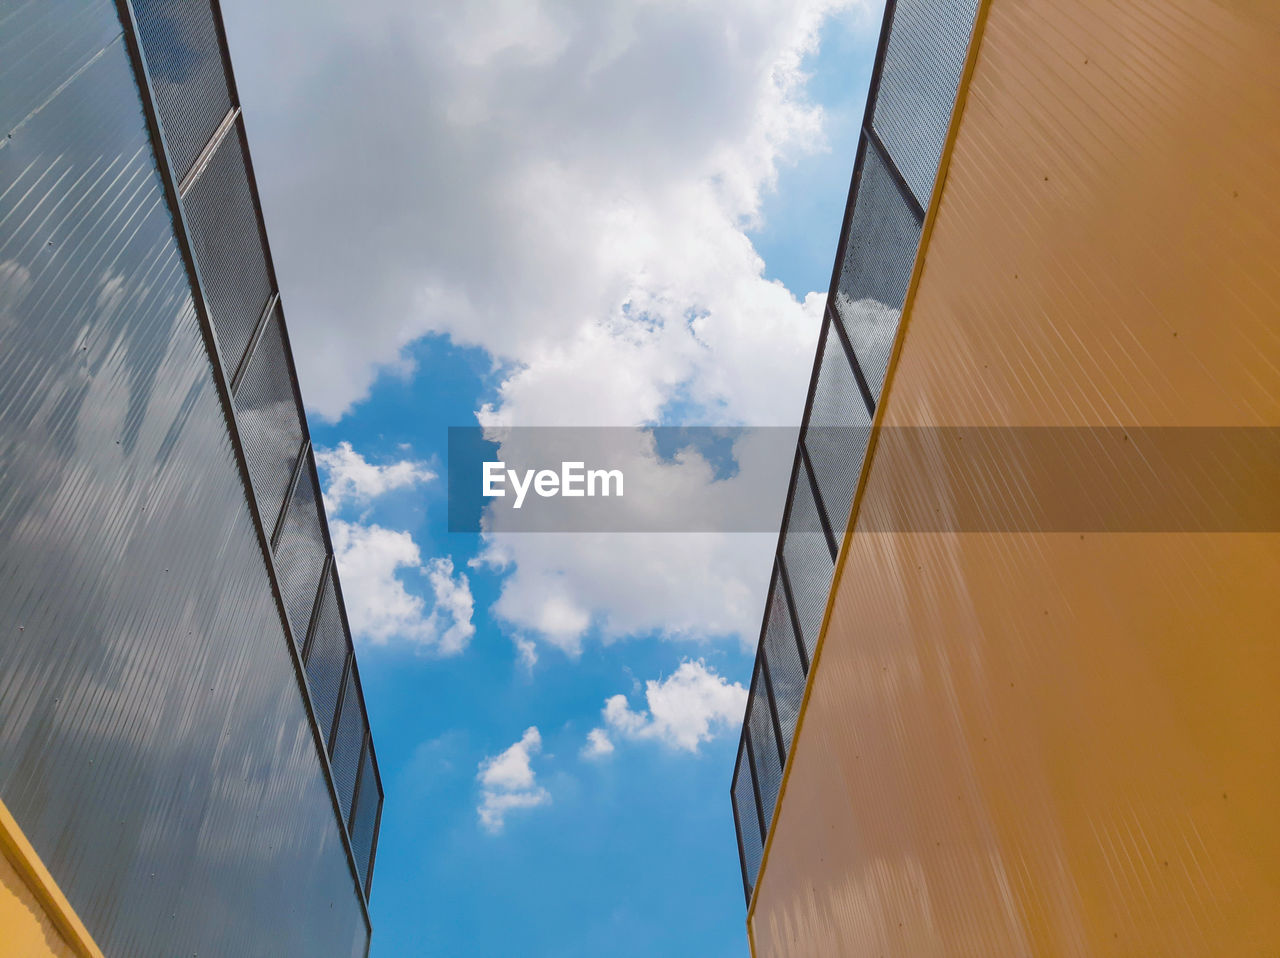 sky, cloud - sky, low angle view, architecture, built structure, building exterior, day, nature, no people, reflection, outdoors, building, sunlight, blue, glass - material, office building exterior, city, wall - building feature, metal, glass